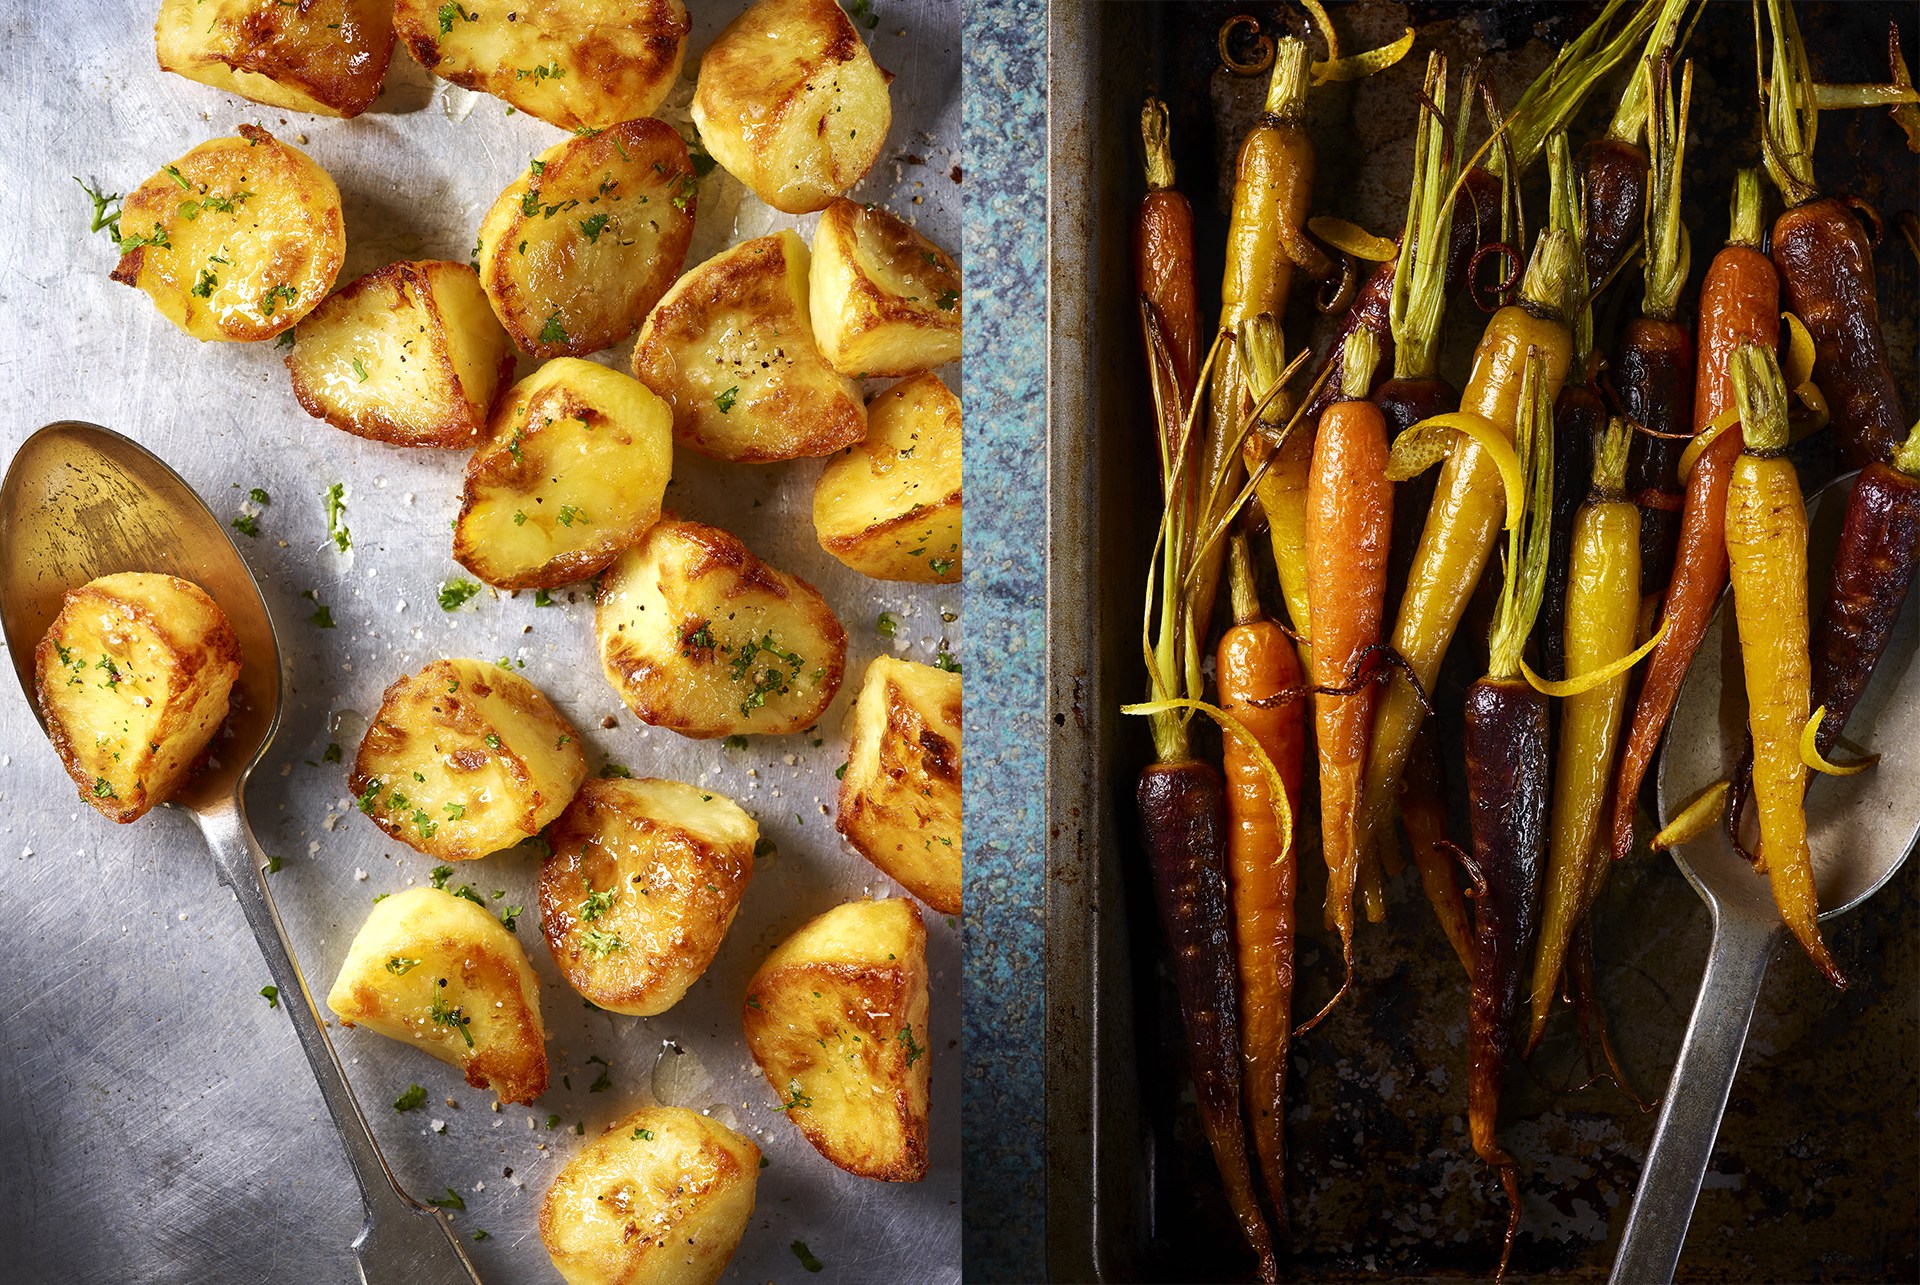 Delicious roast potatoes and roast carrots on baking trays. Food photographer Lauren Mclean